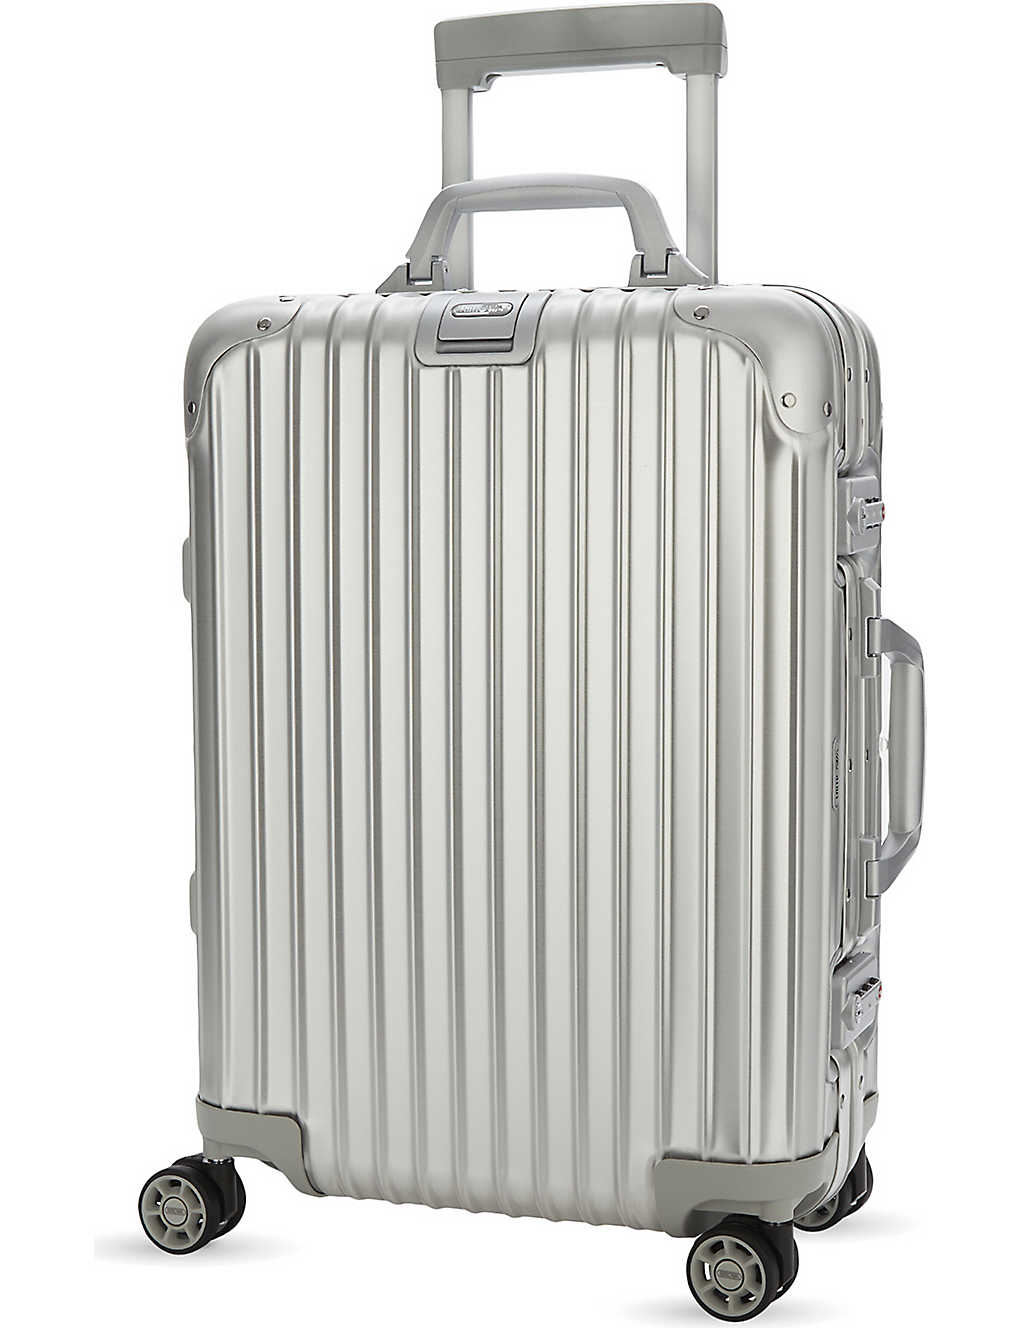 rimowa post cabins of overseas airshoppers the with request travelers requests help topas shop cabin multiwheel